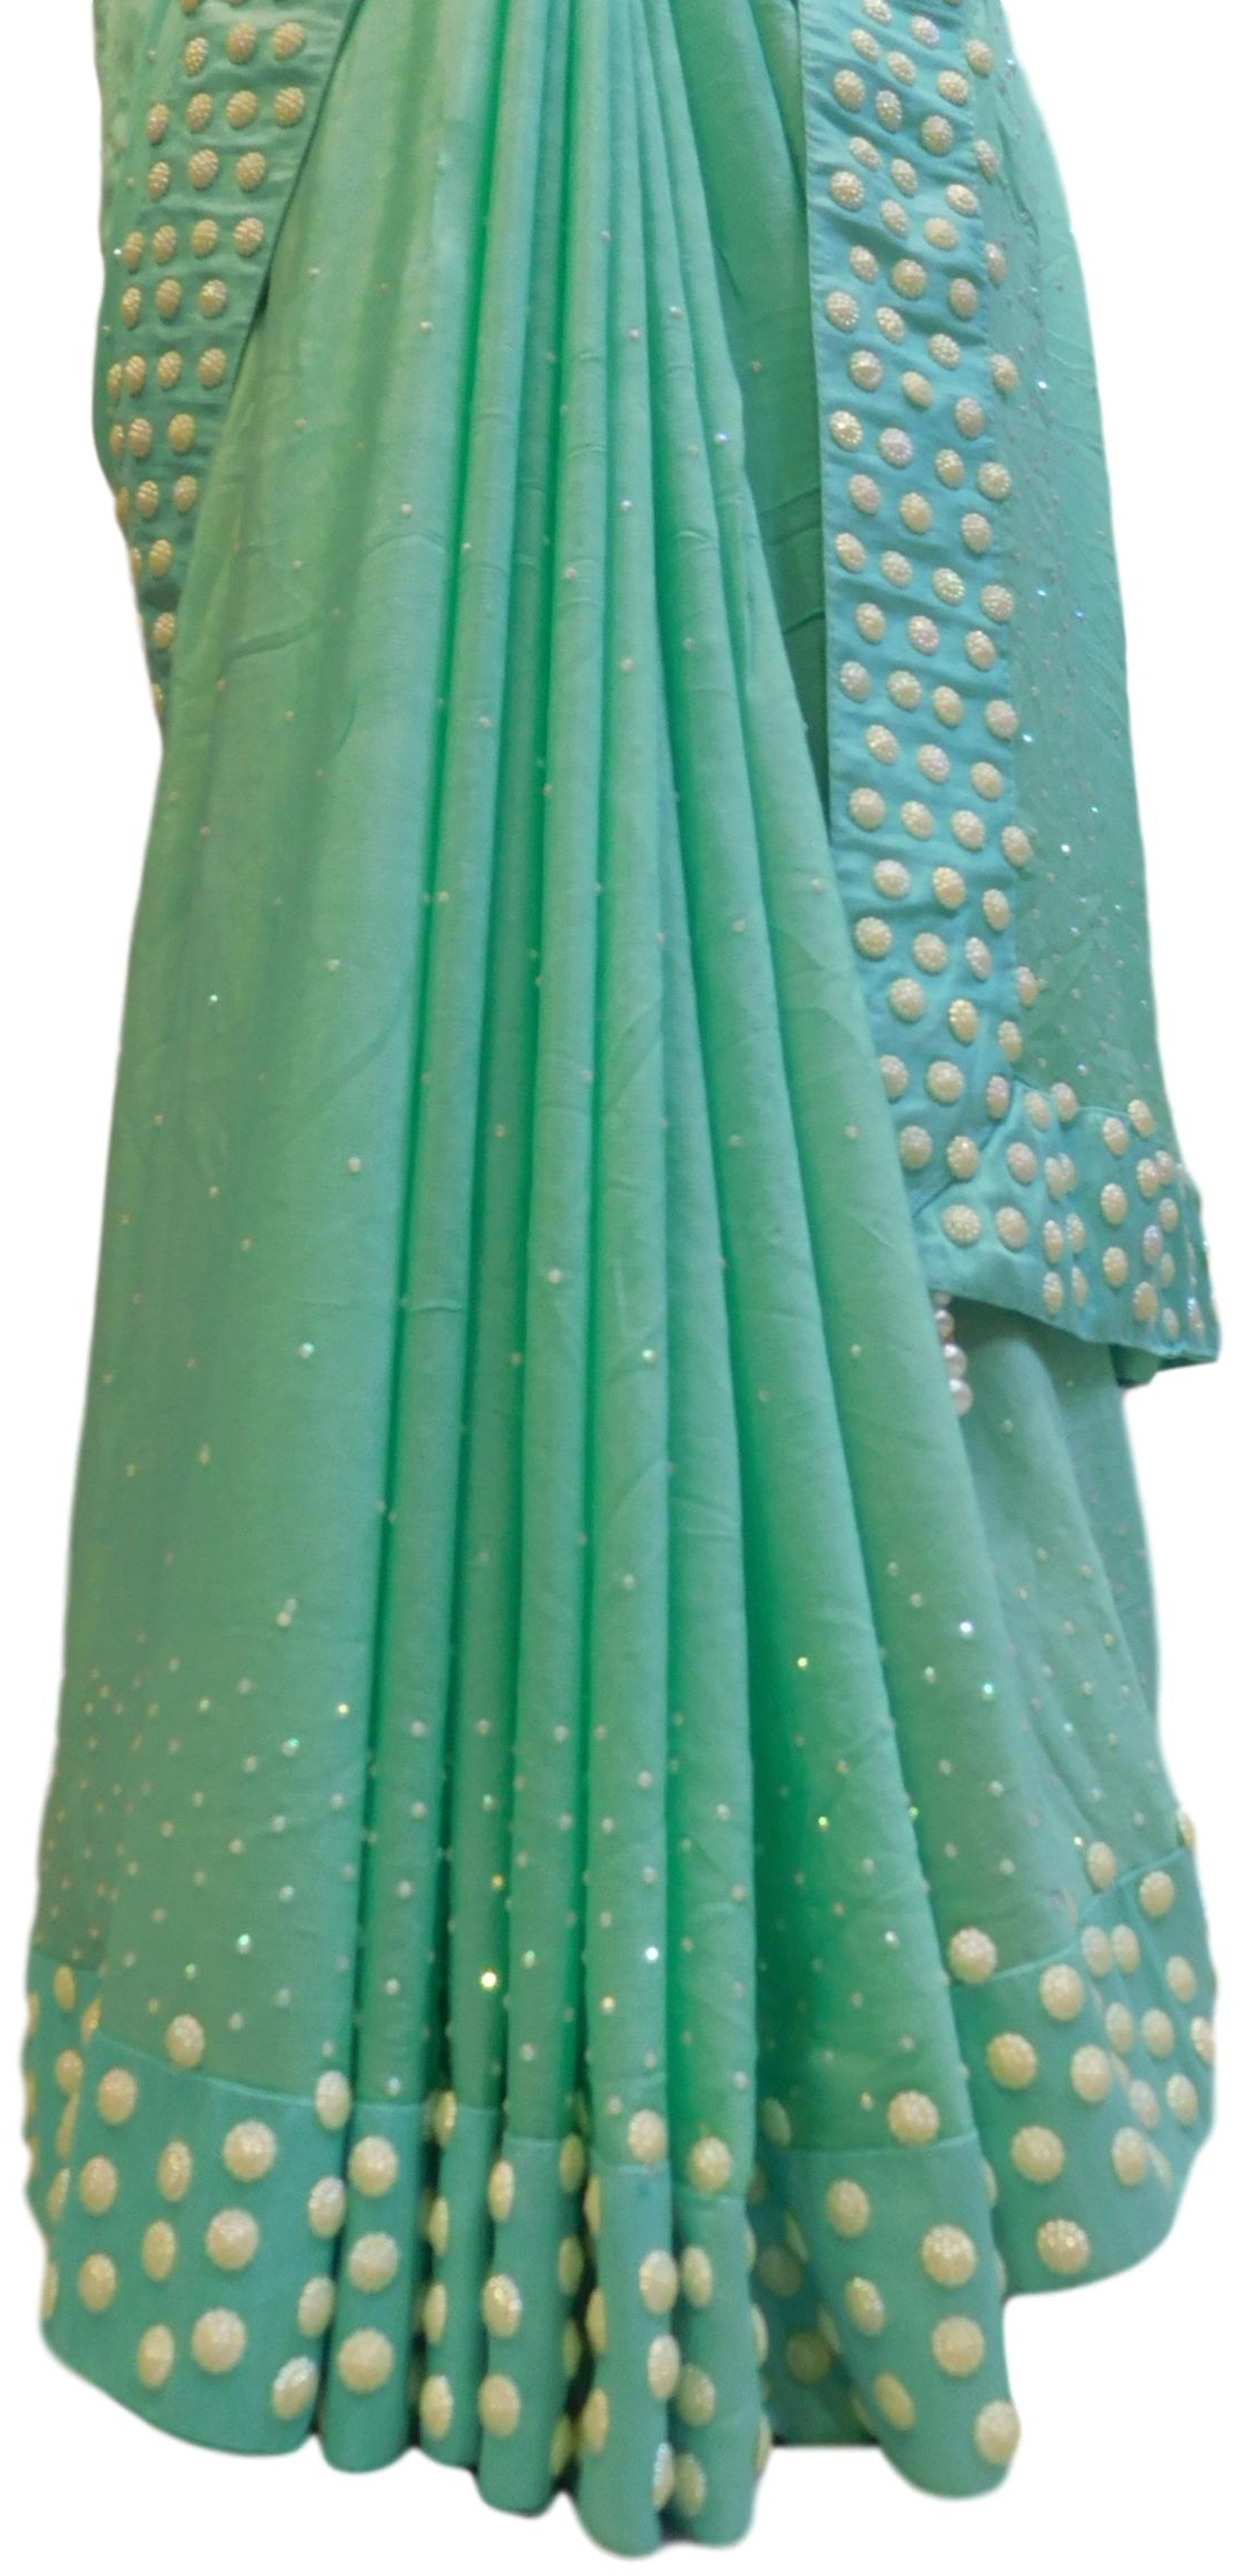 Turquoise Designer Georgette (Viscos) Hand Embroidery Beads Stone Work Saree Sari